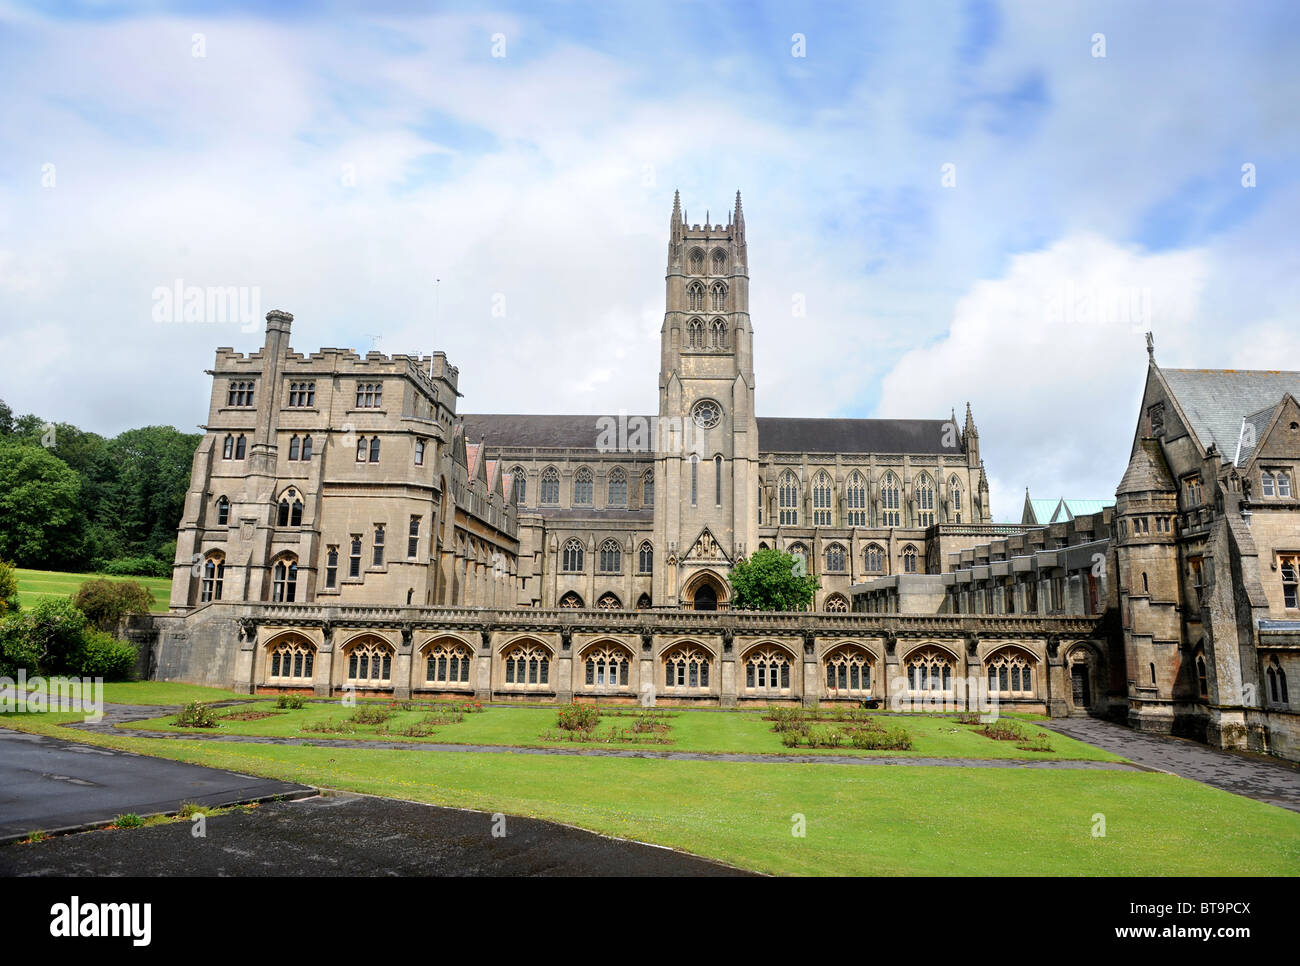 Downside Abbey and school in Stratton-on-the-Fosse near Radstock, Somerset UK Stock Photo